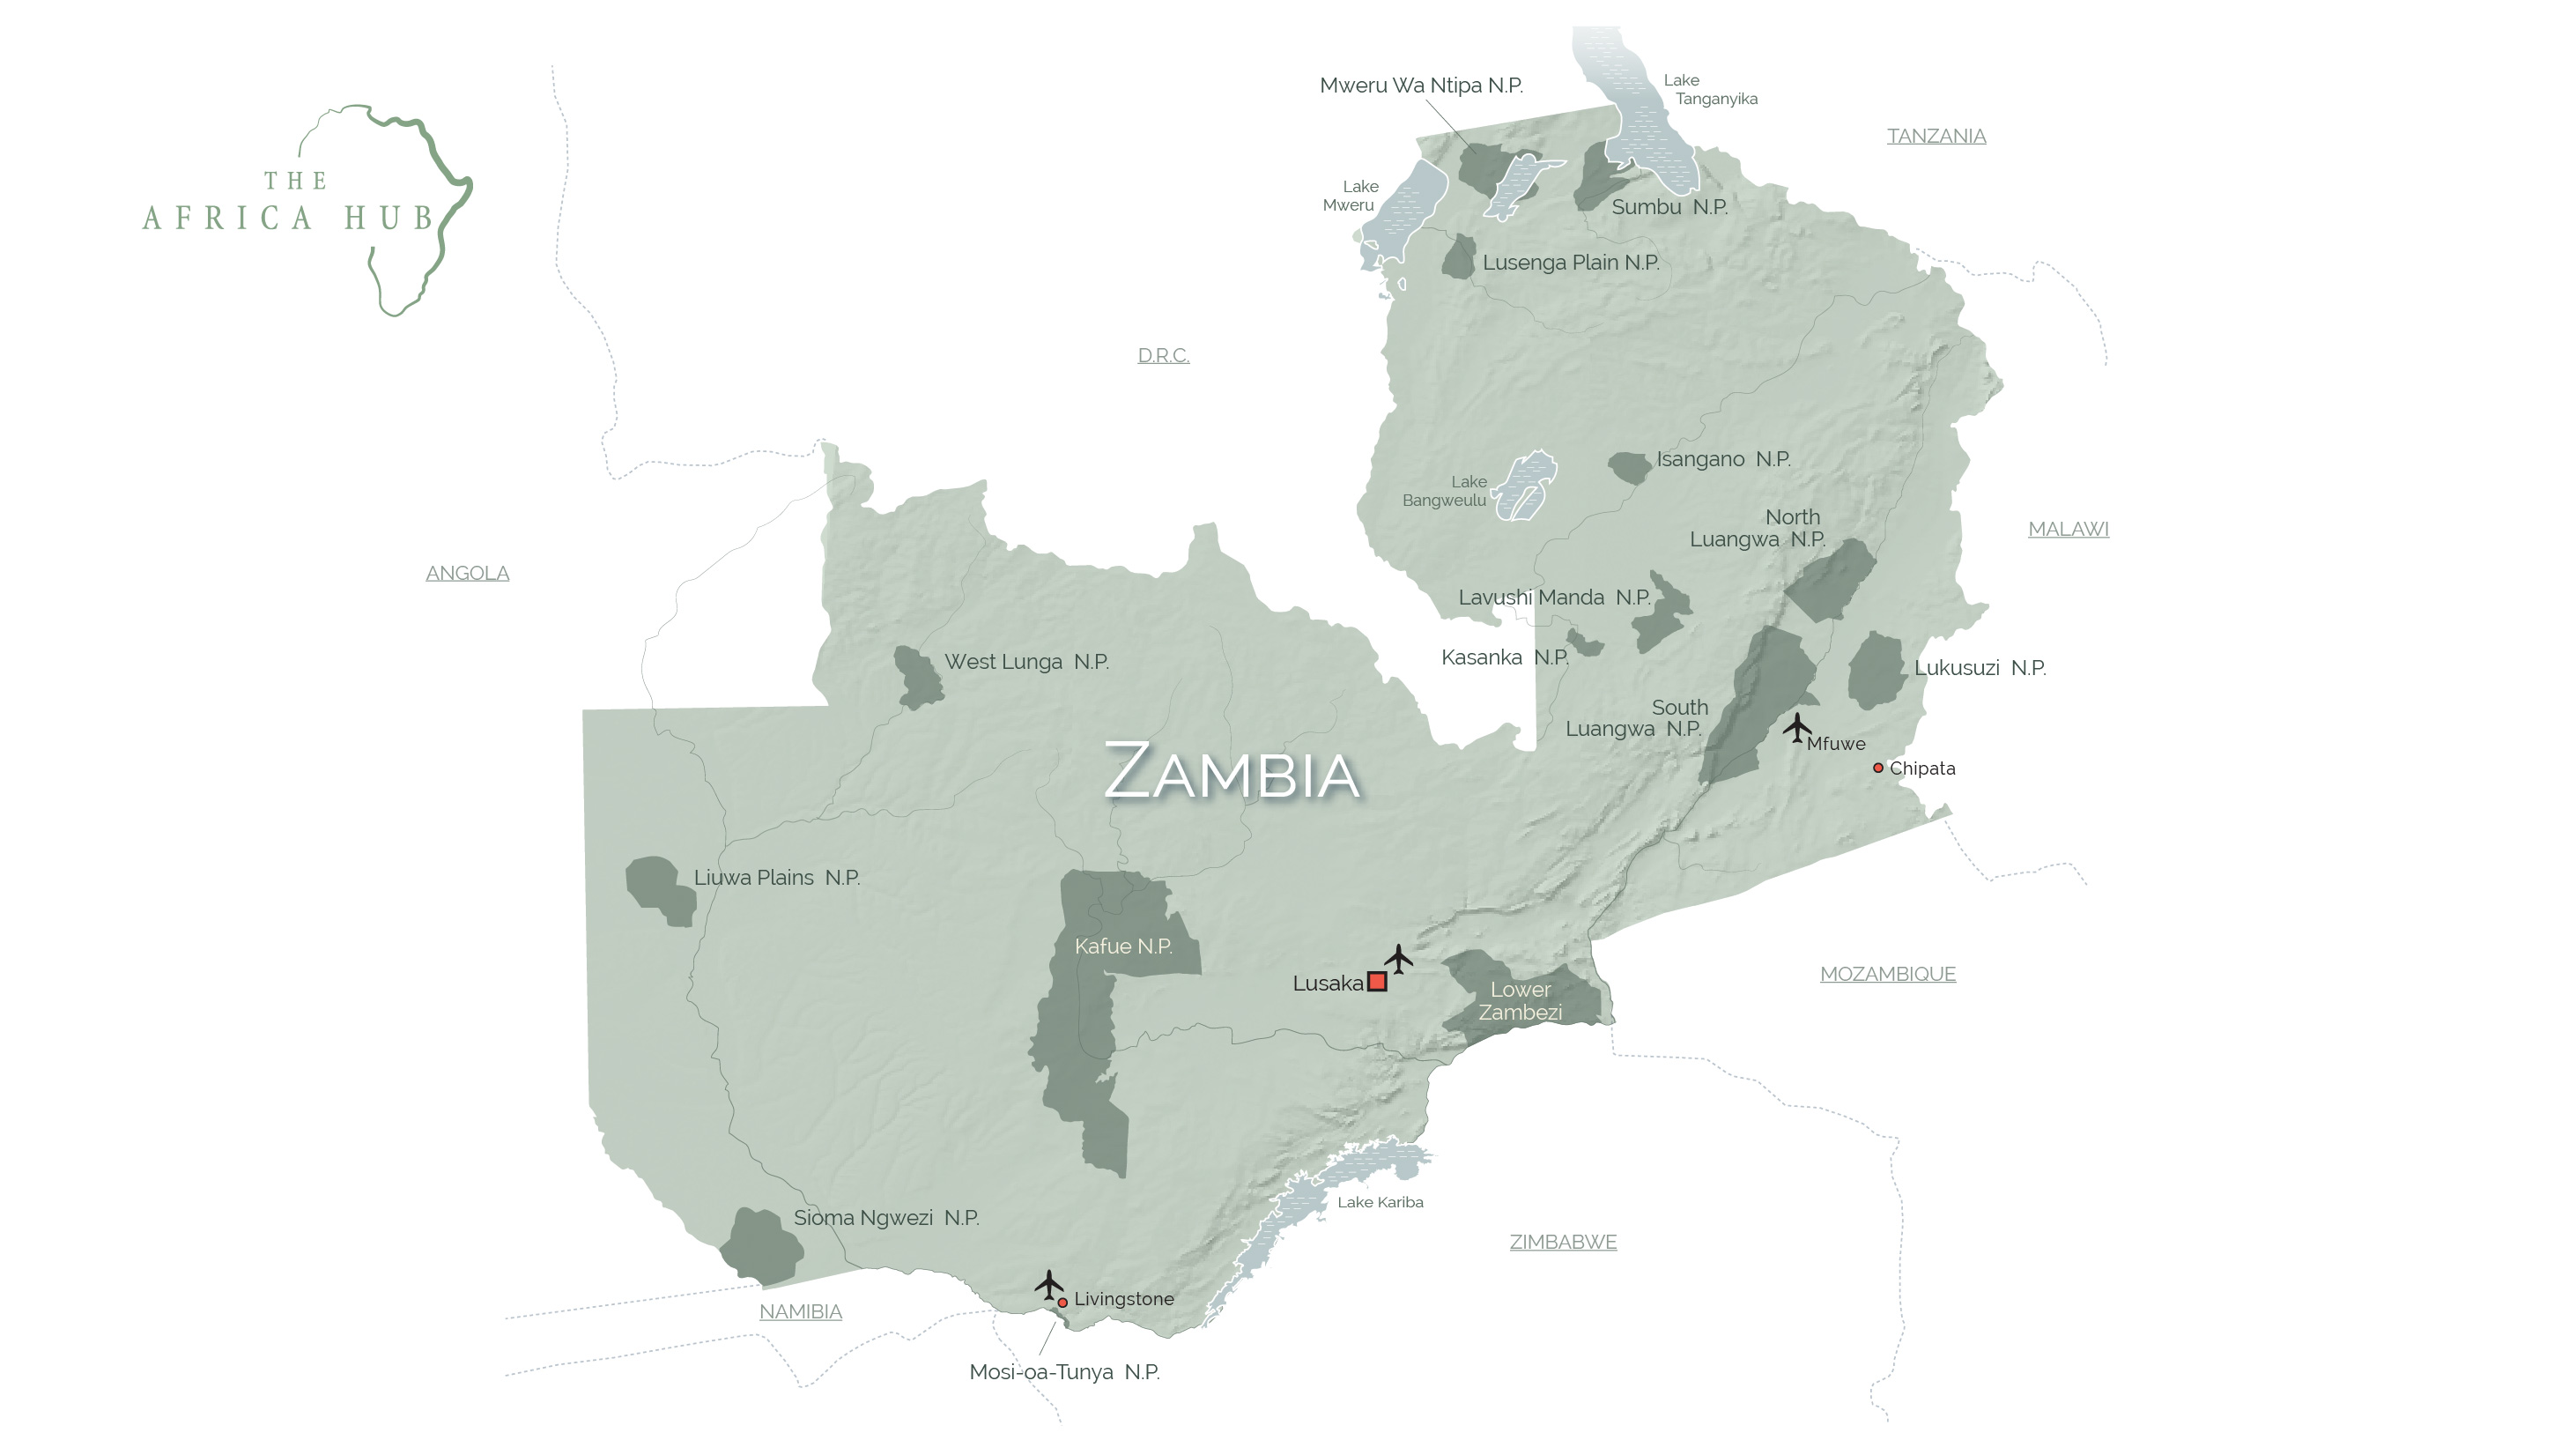 Map of Zambia with key tourism destinations marked